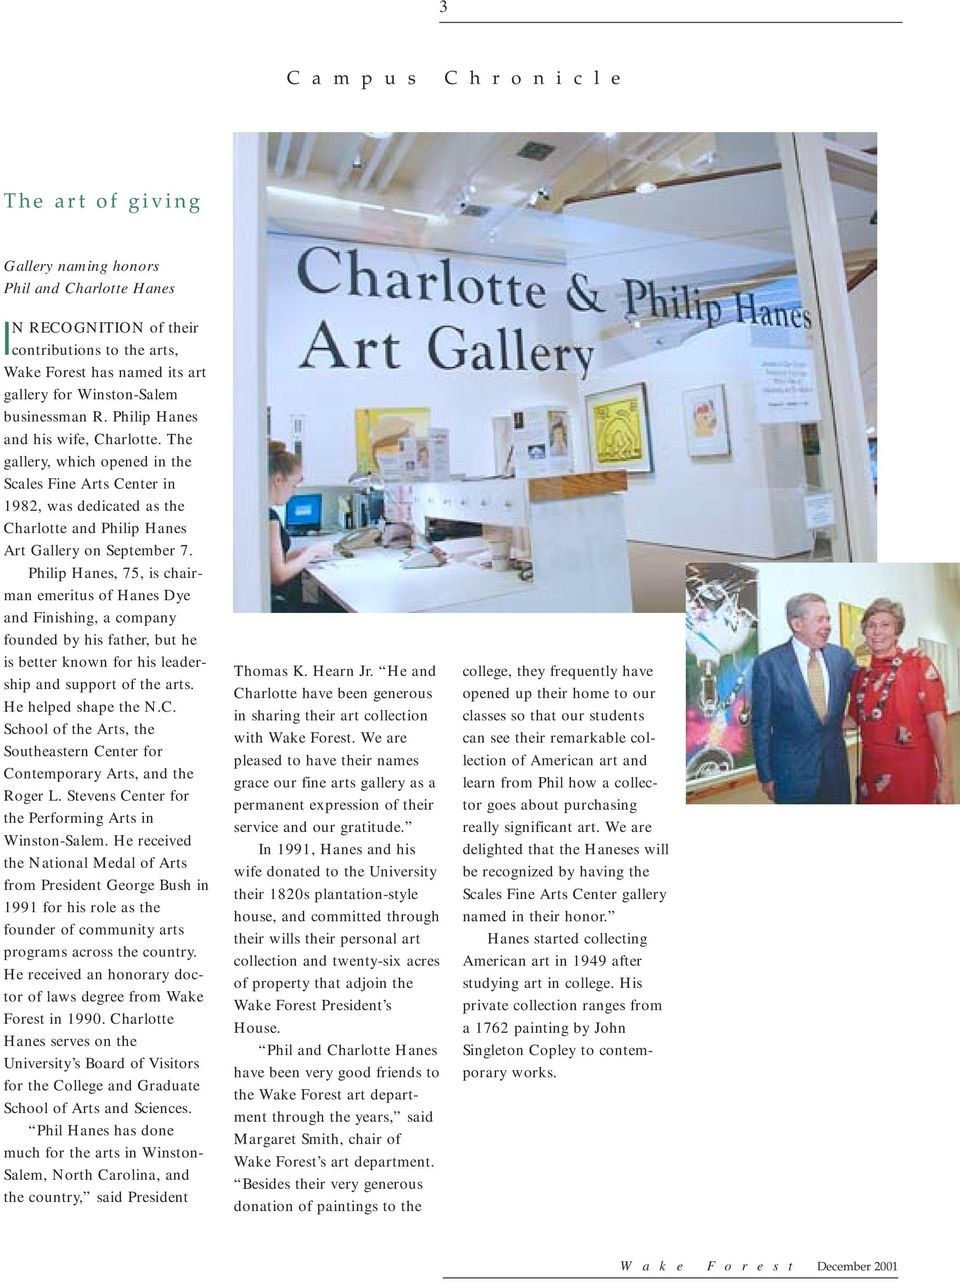 The gallery, which opened in the Scales Fine Arts Center in 1982, was dedicated as the Charlotte and Philip Hanes Art Gallery on September 7.